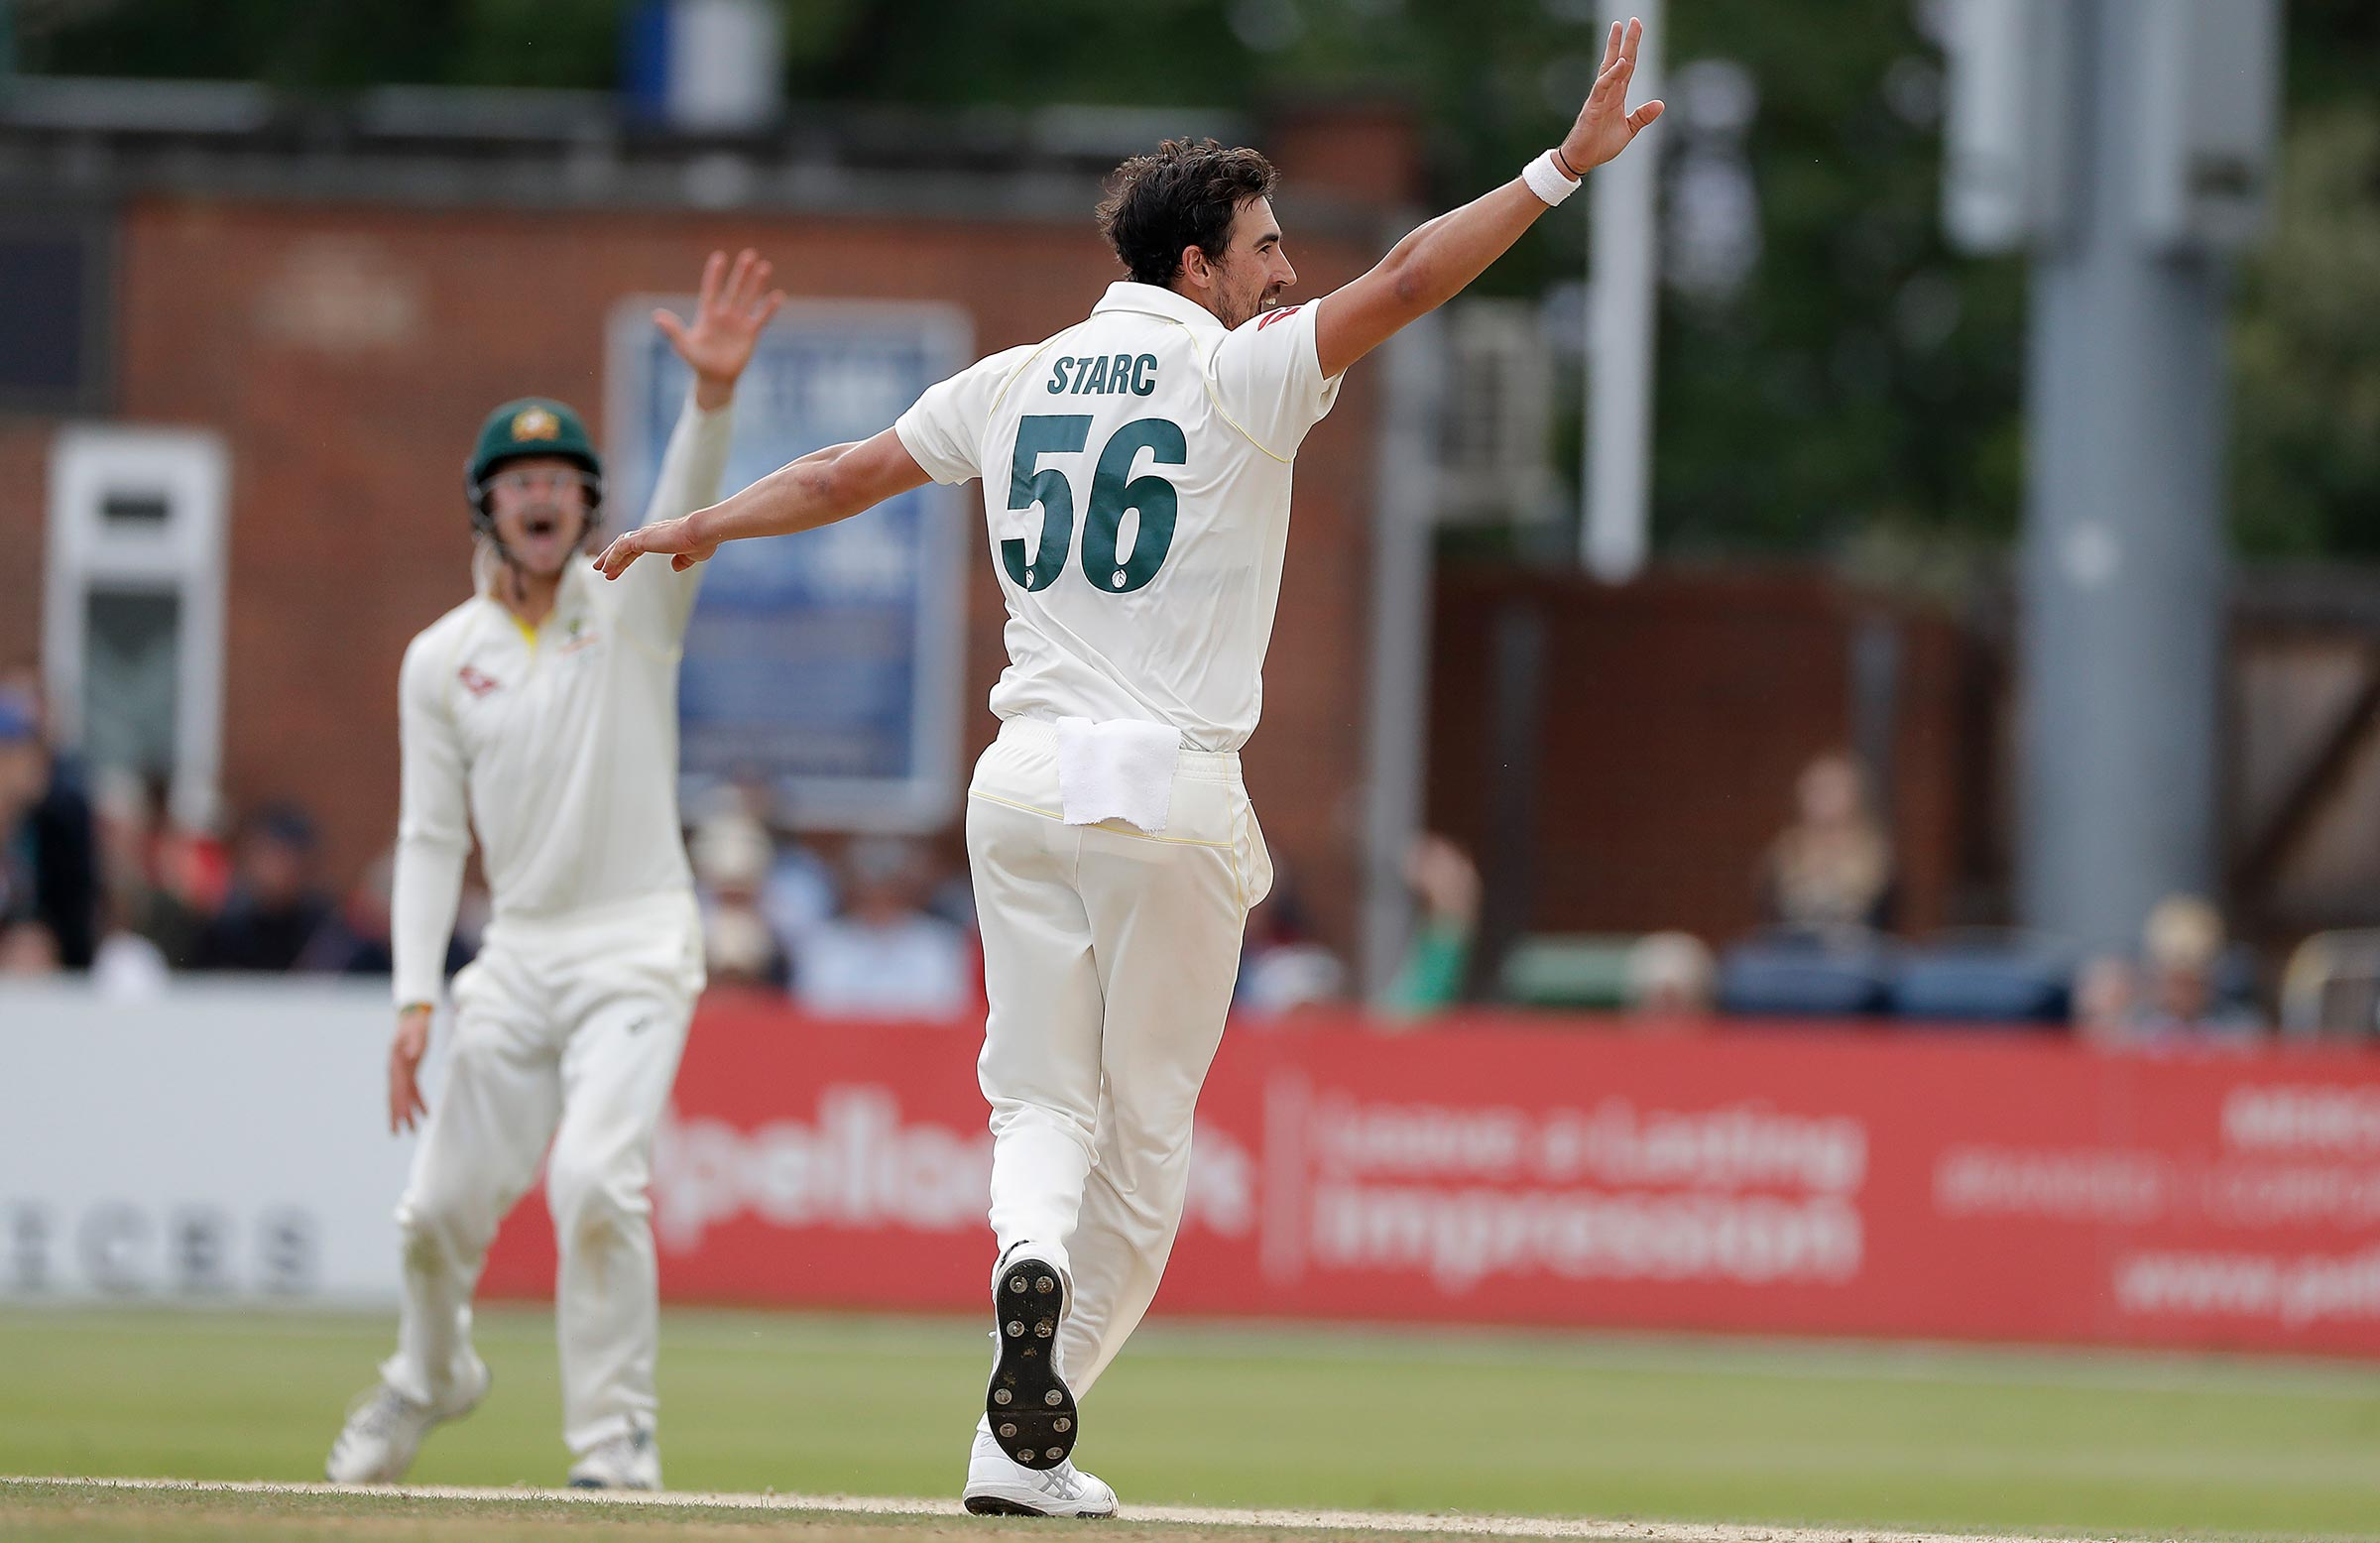 Starc claimed three wickets in an over // Getty